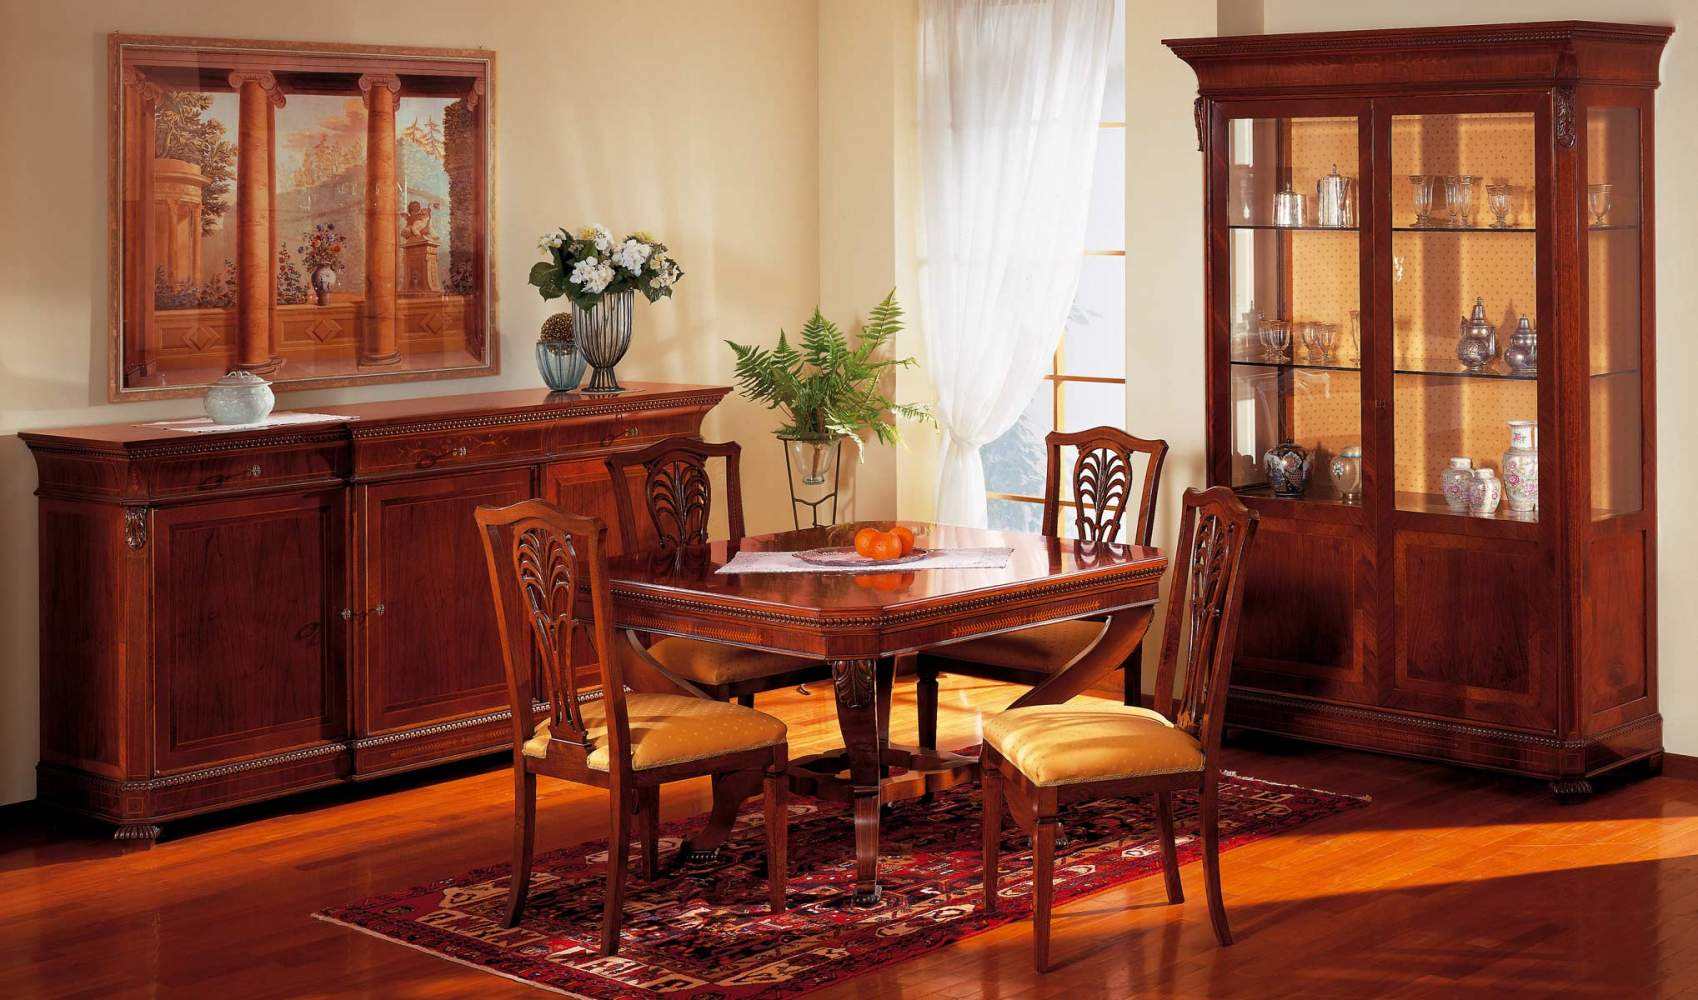 Charles X style dining room